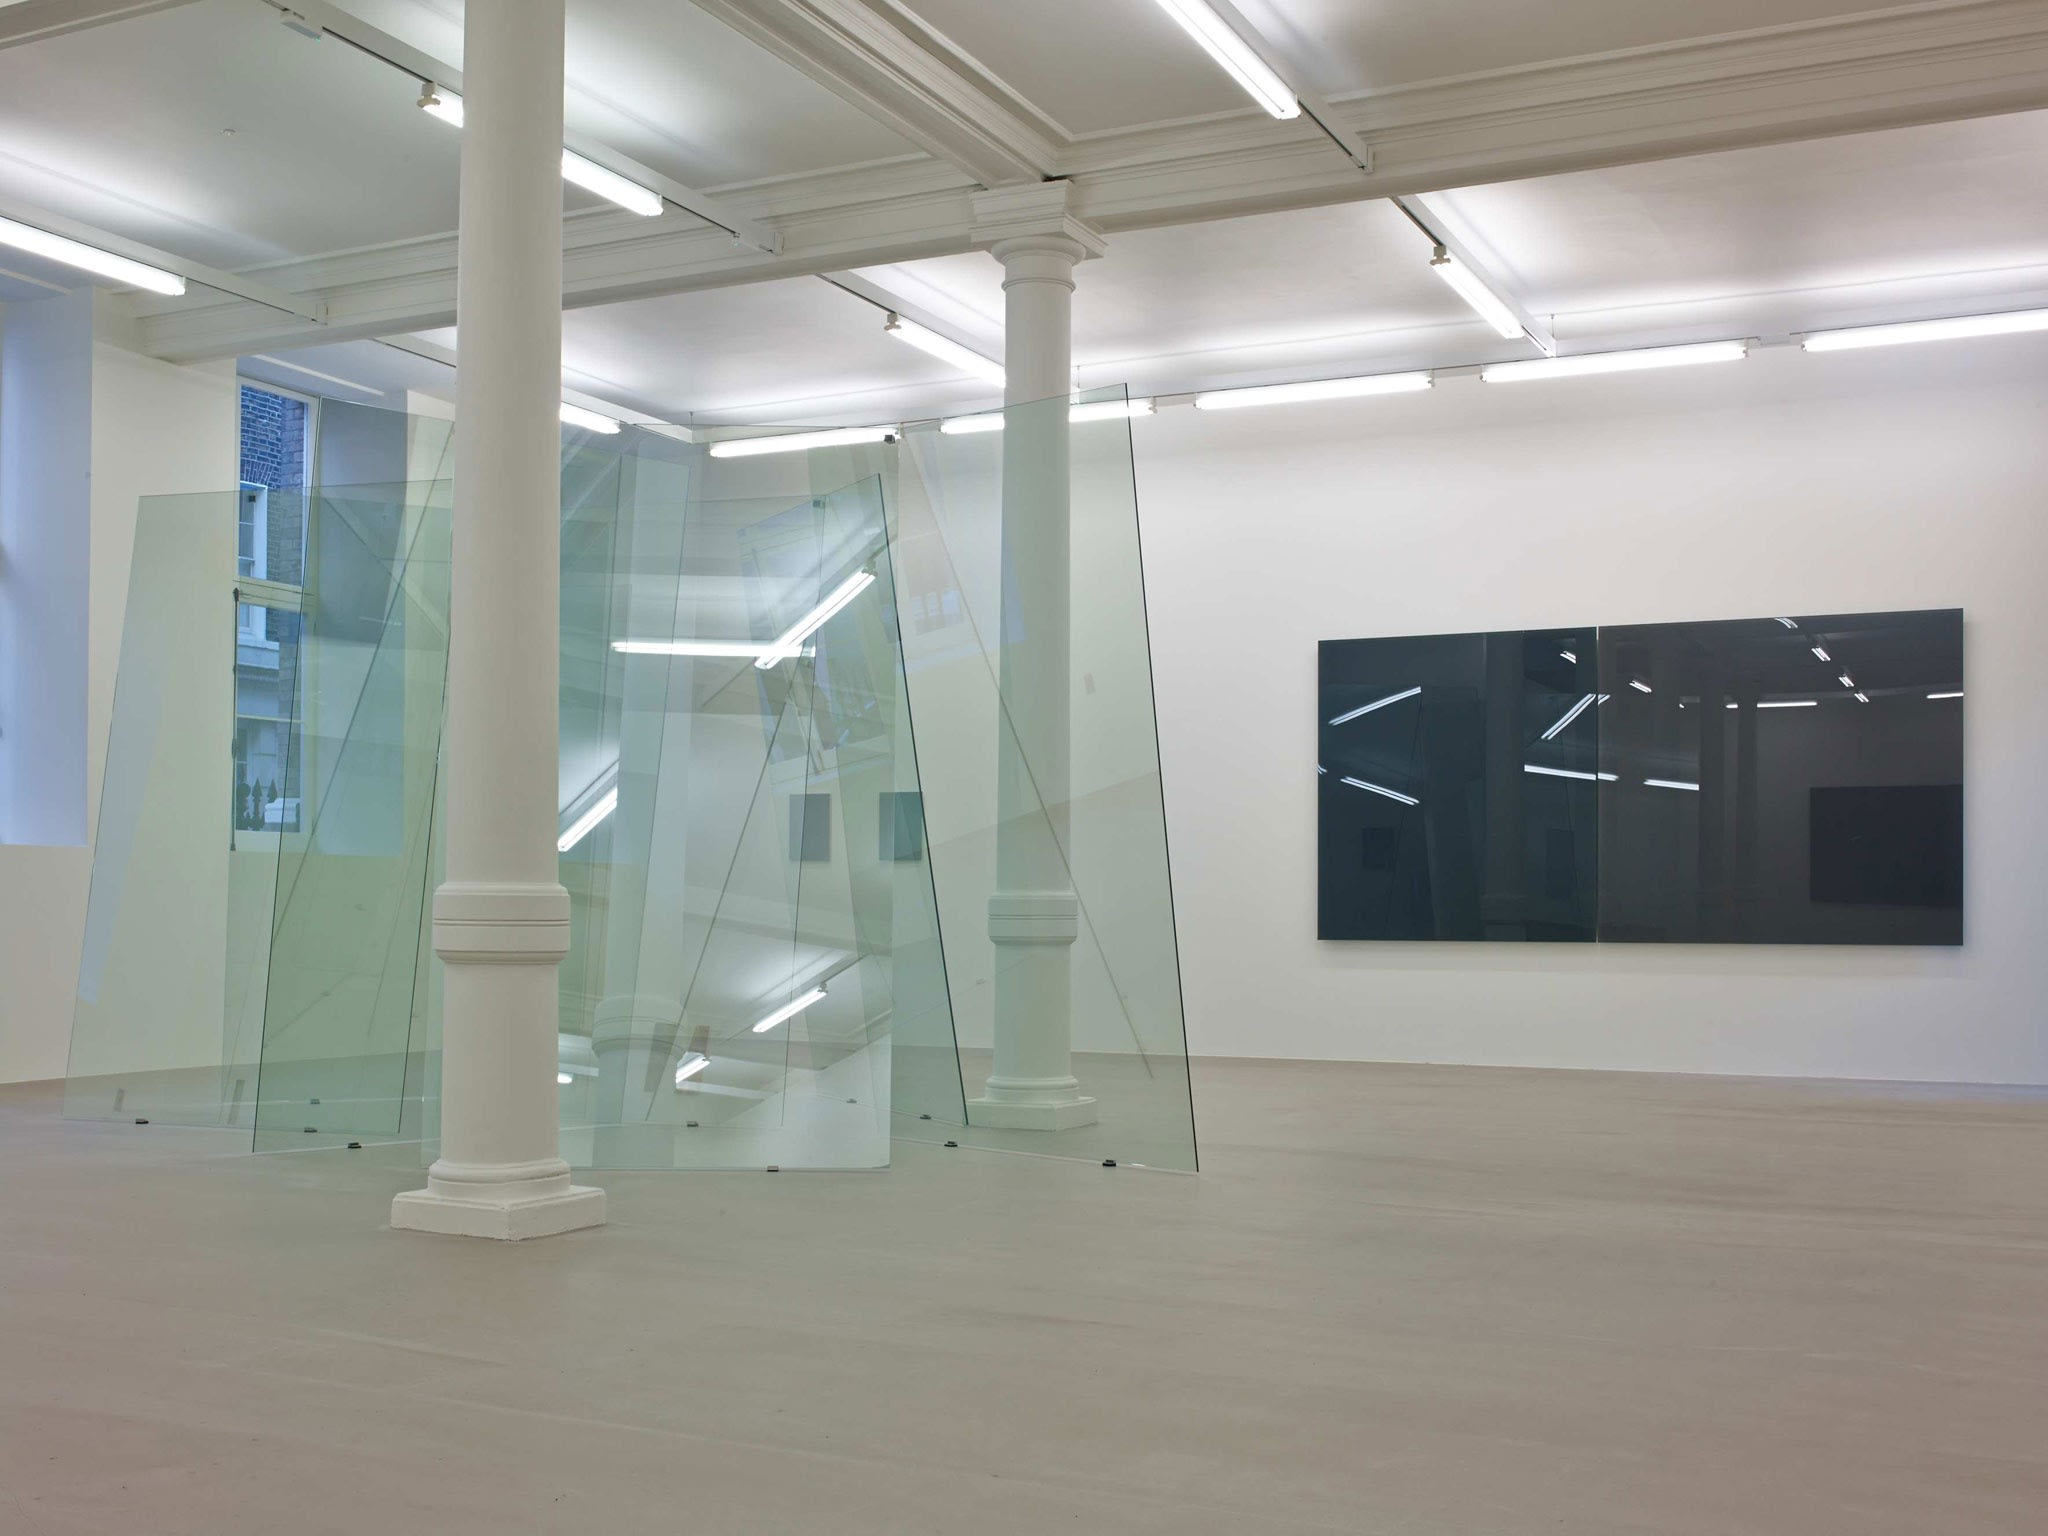 In a large white space with columns and many windows, several glass planes lean on each other unevenly, making a large sculpture. Behind it on a wall, two large square glass panes hang, one black and one grey.